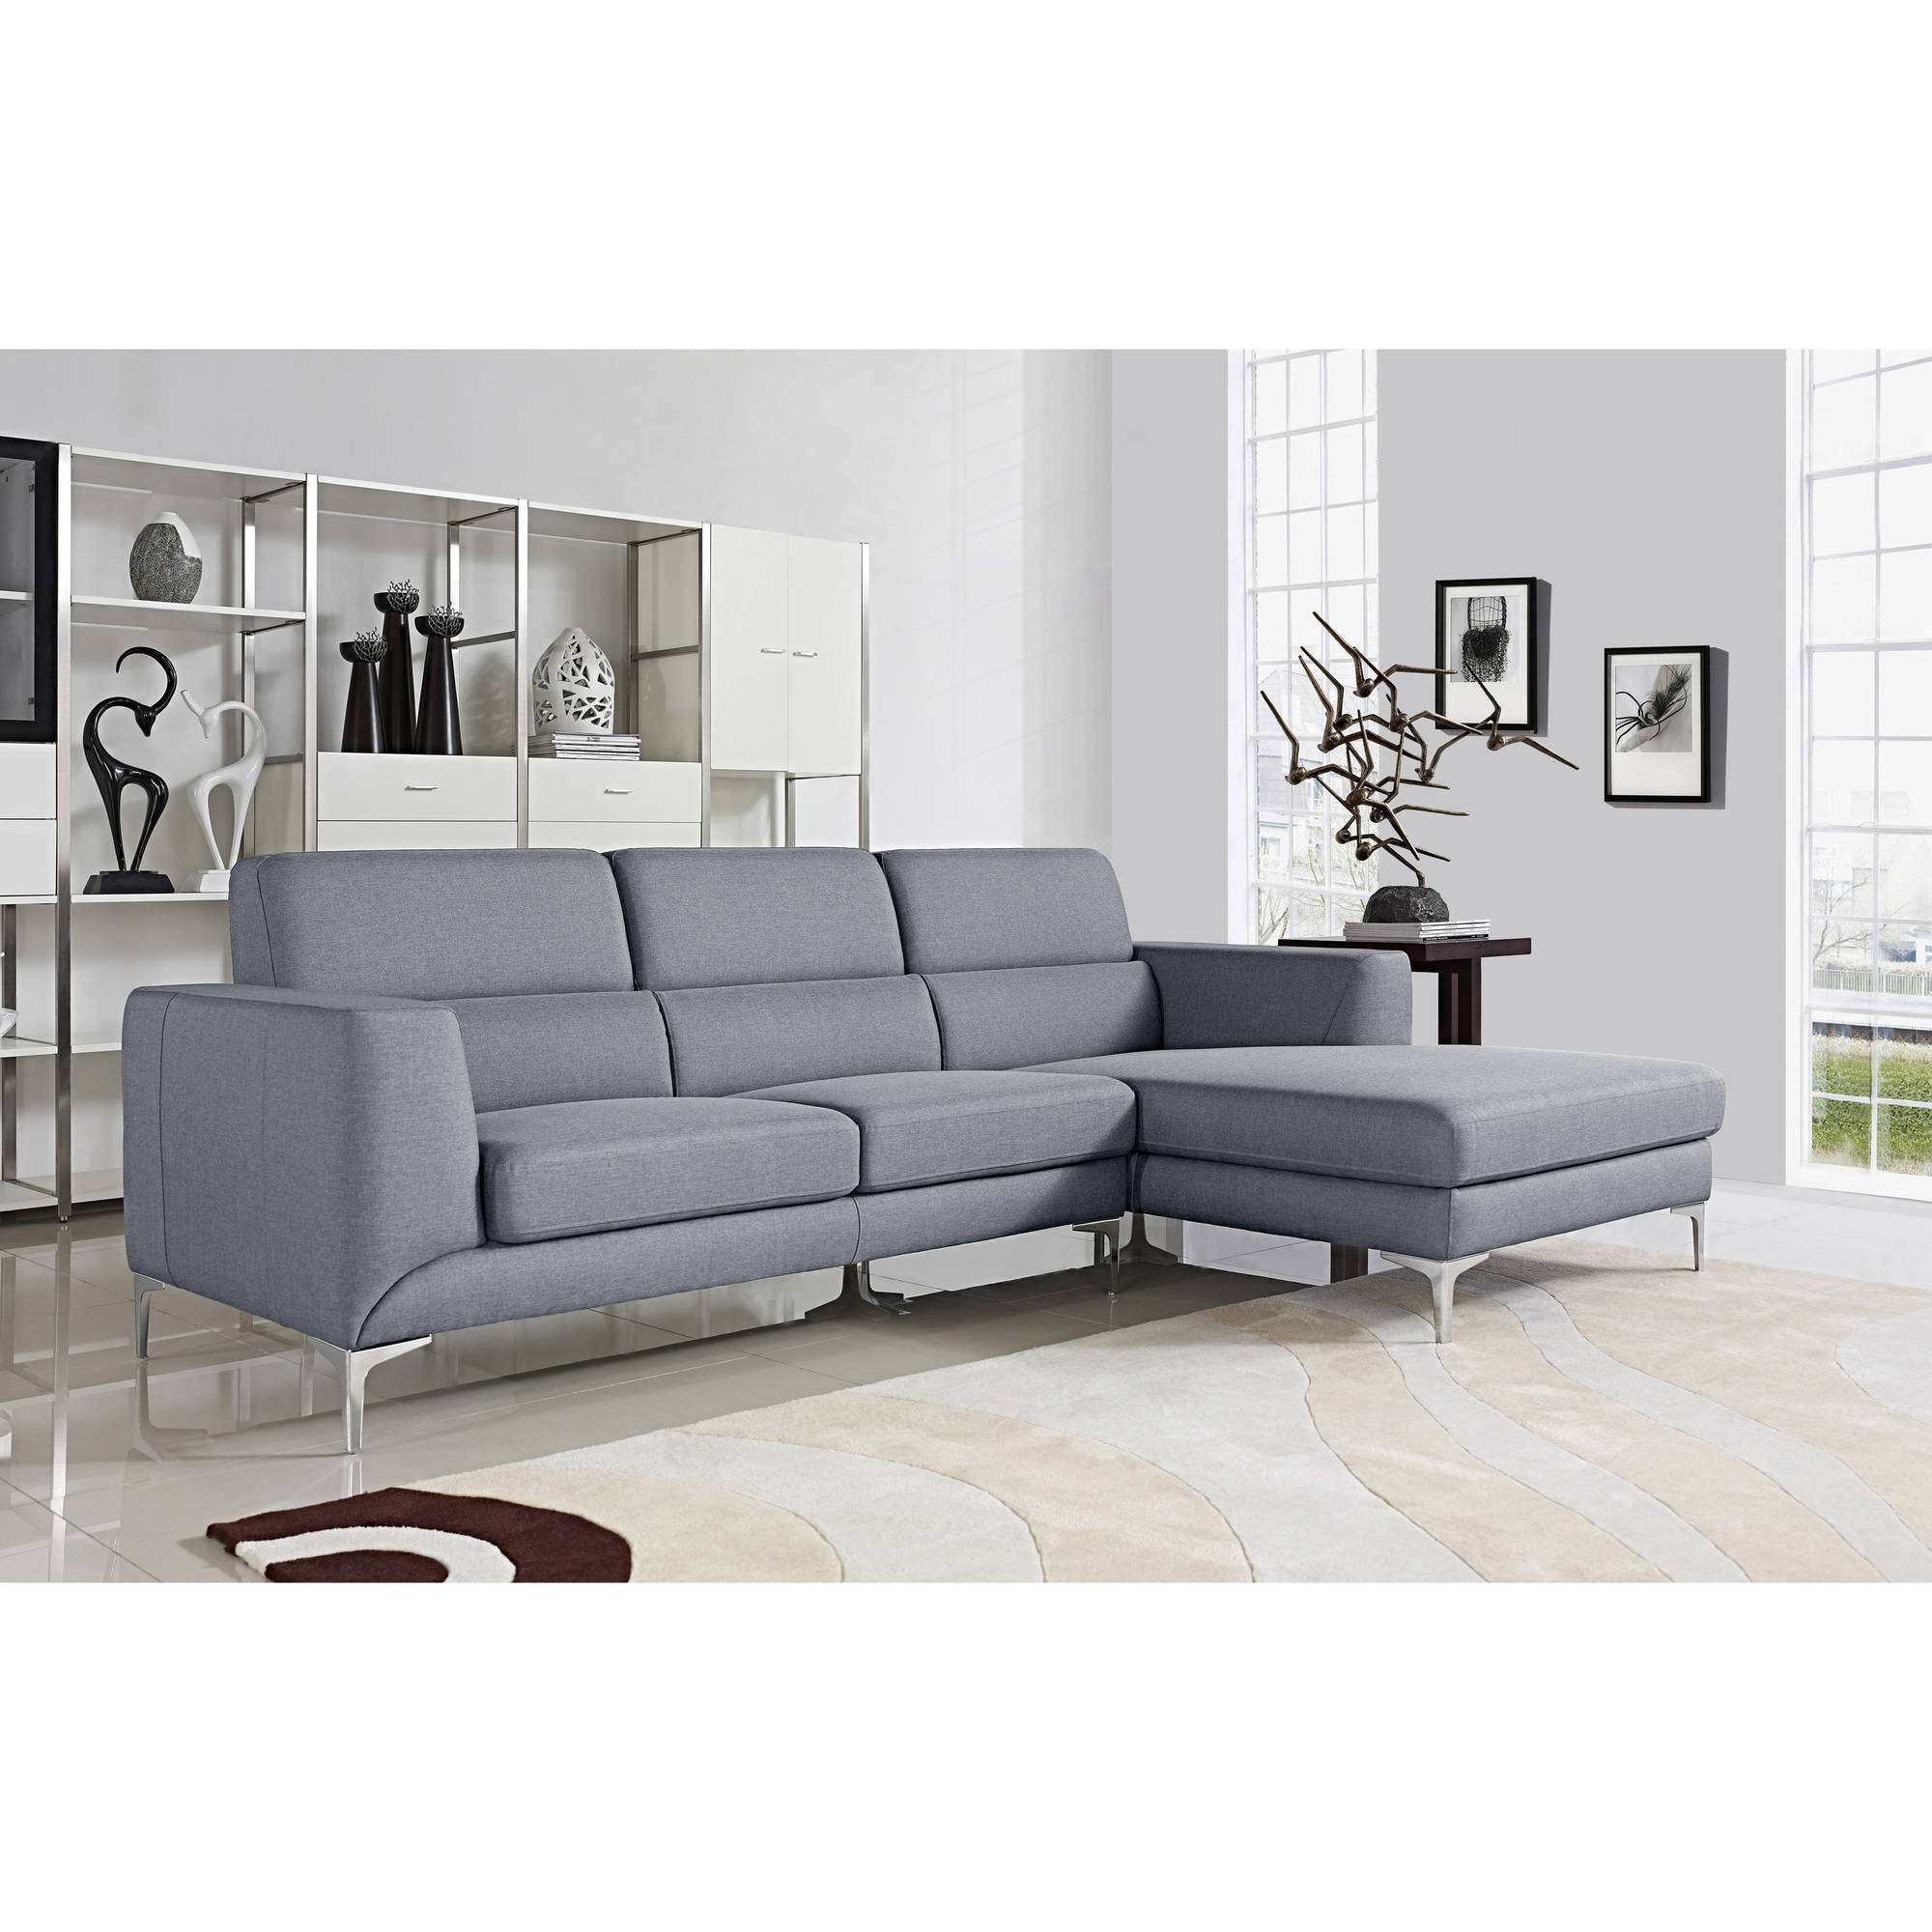 Xena Modern Fabric Upholstered Right Facing 2-Piece Sectional Sofa, Grey